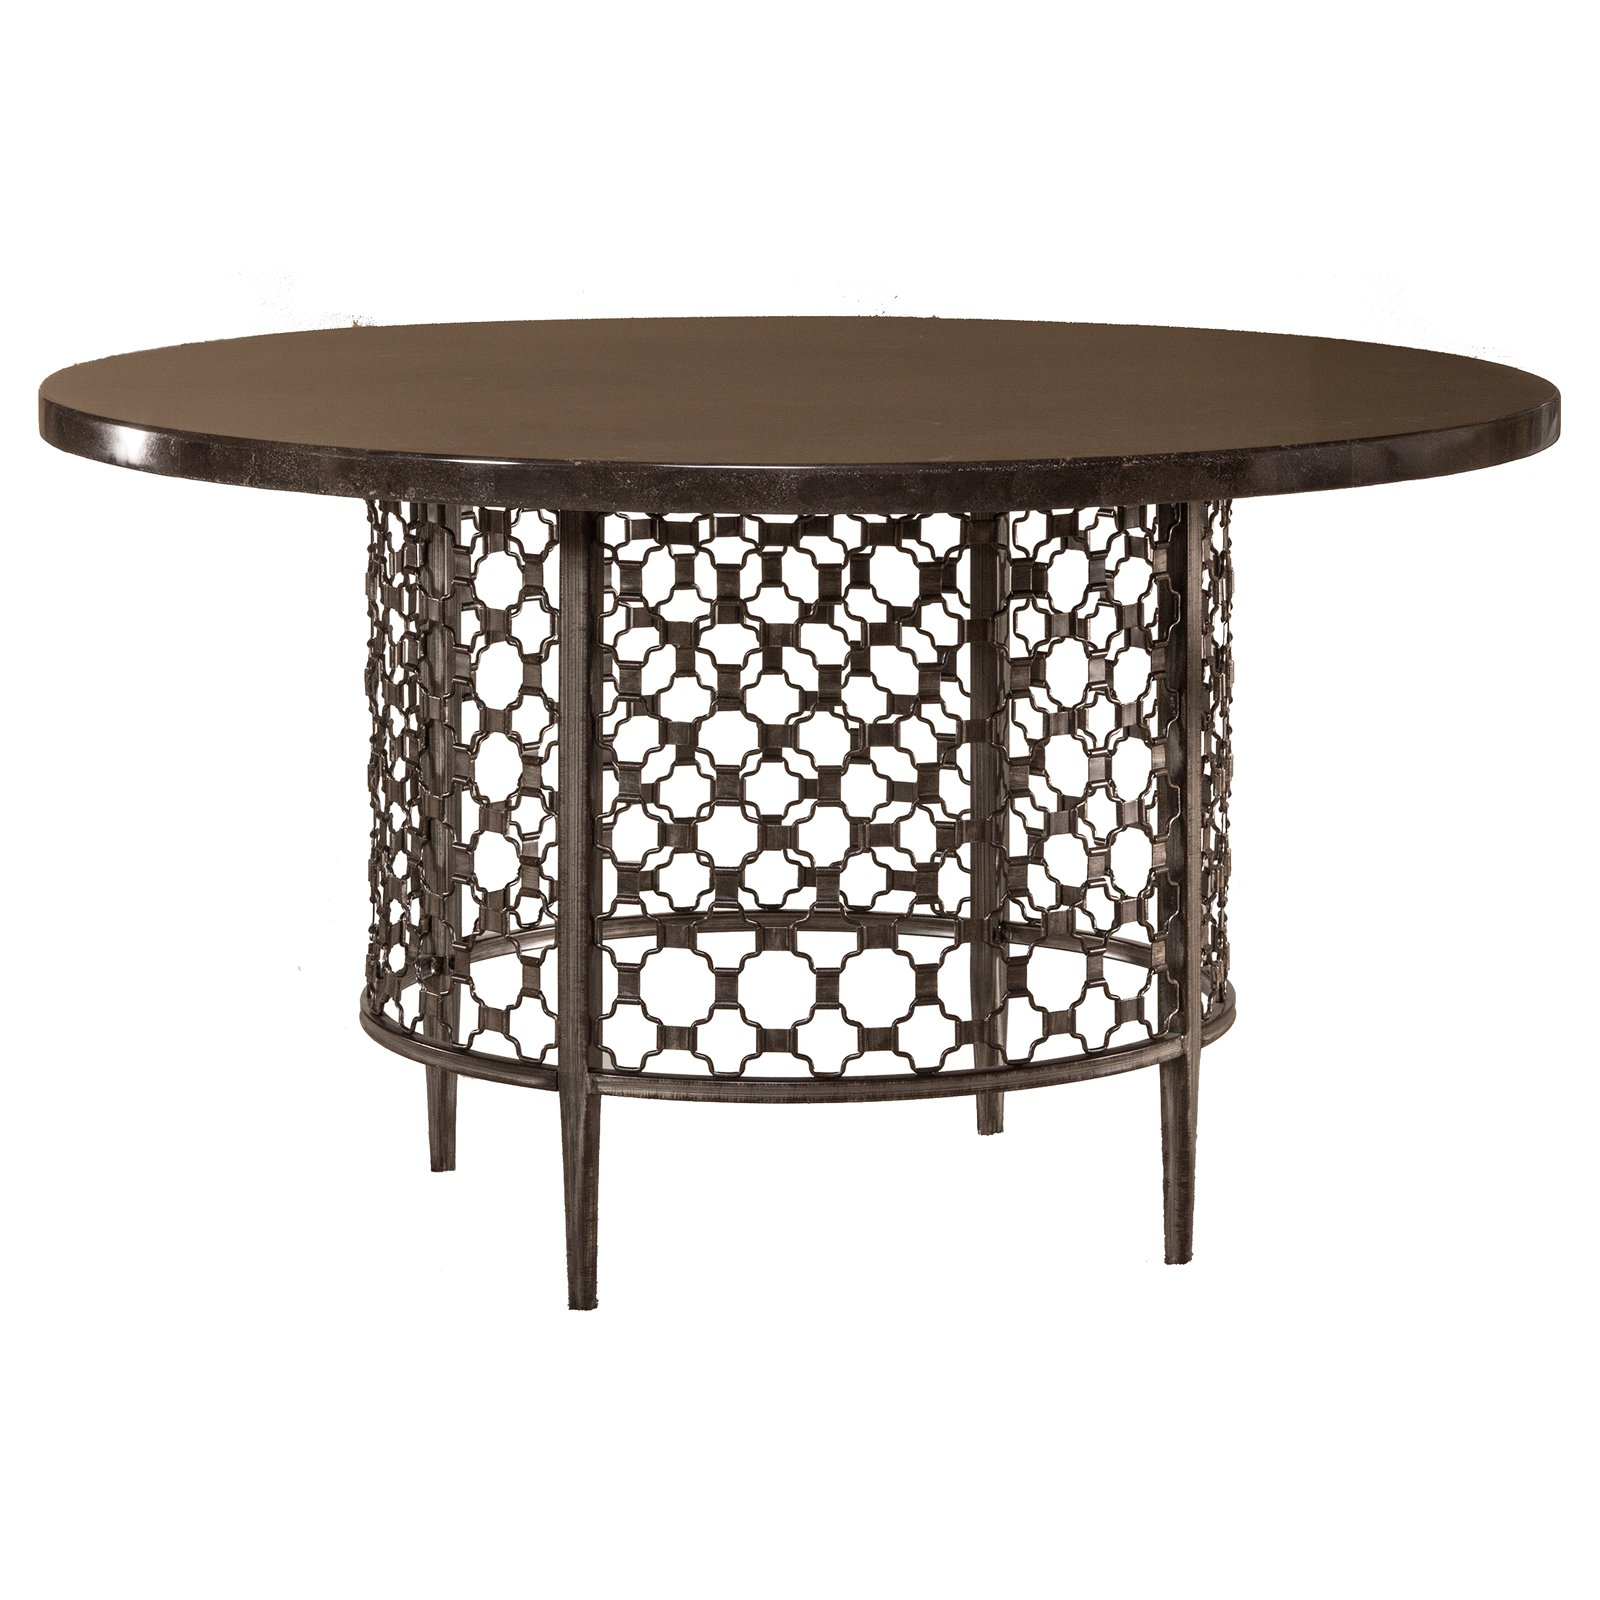 Hillsdale Brescello Round Dining Table by Hillsdale